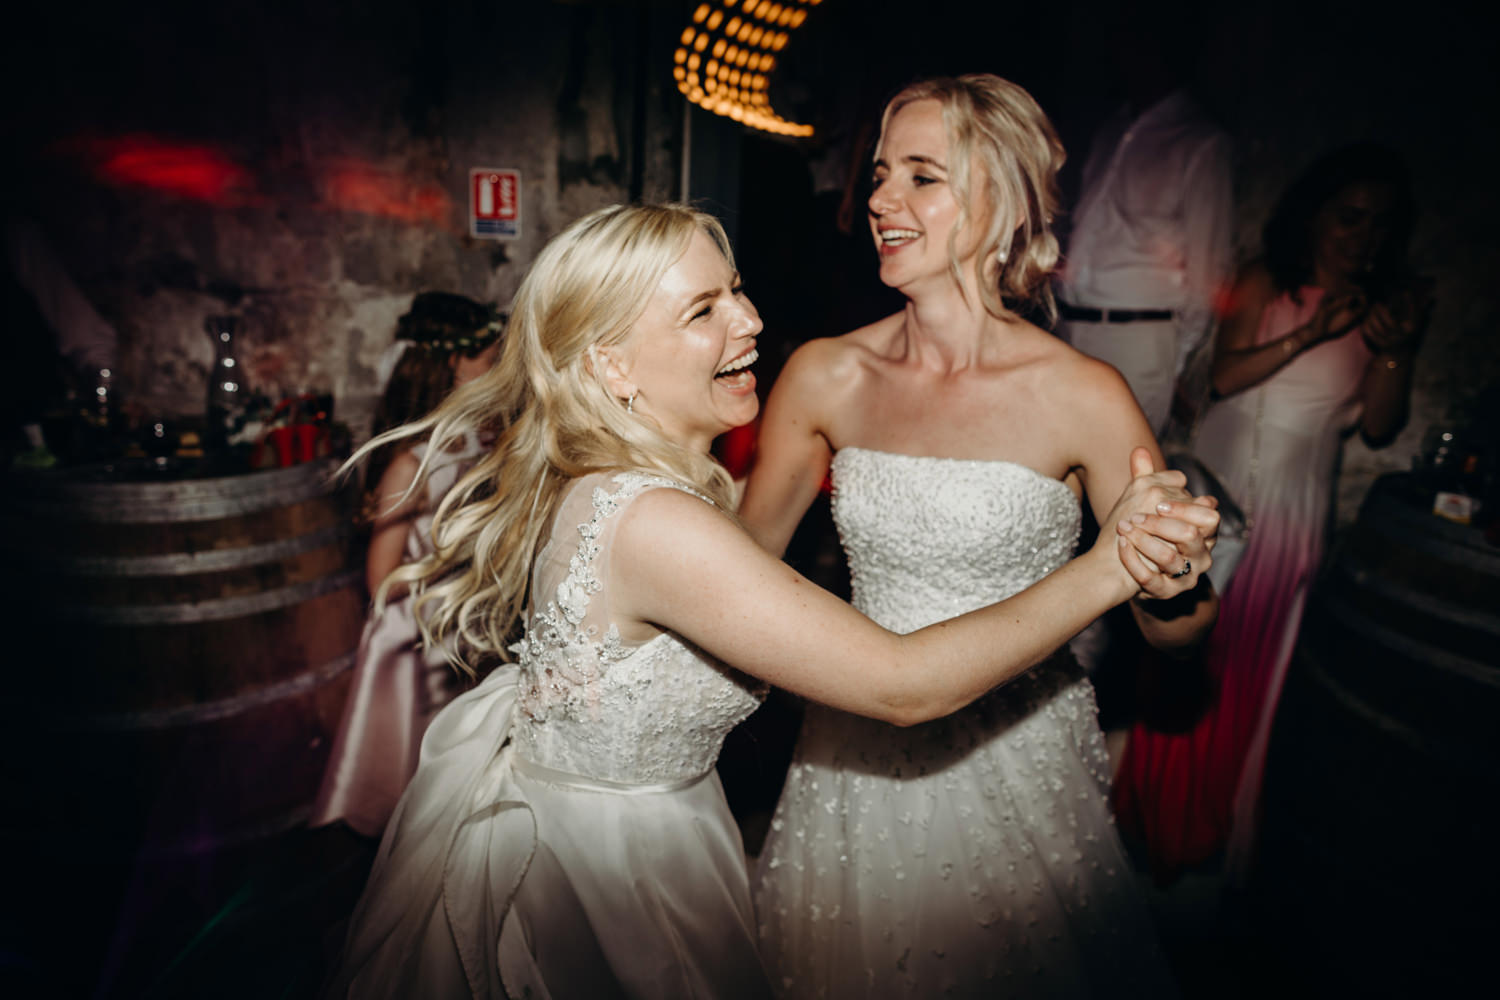 brides dance at wedding party